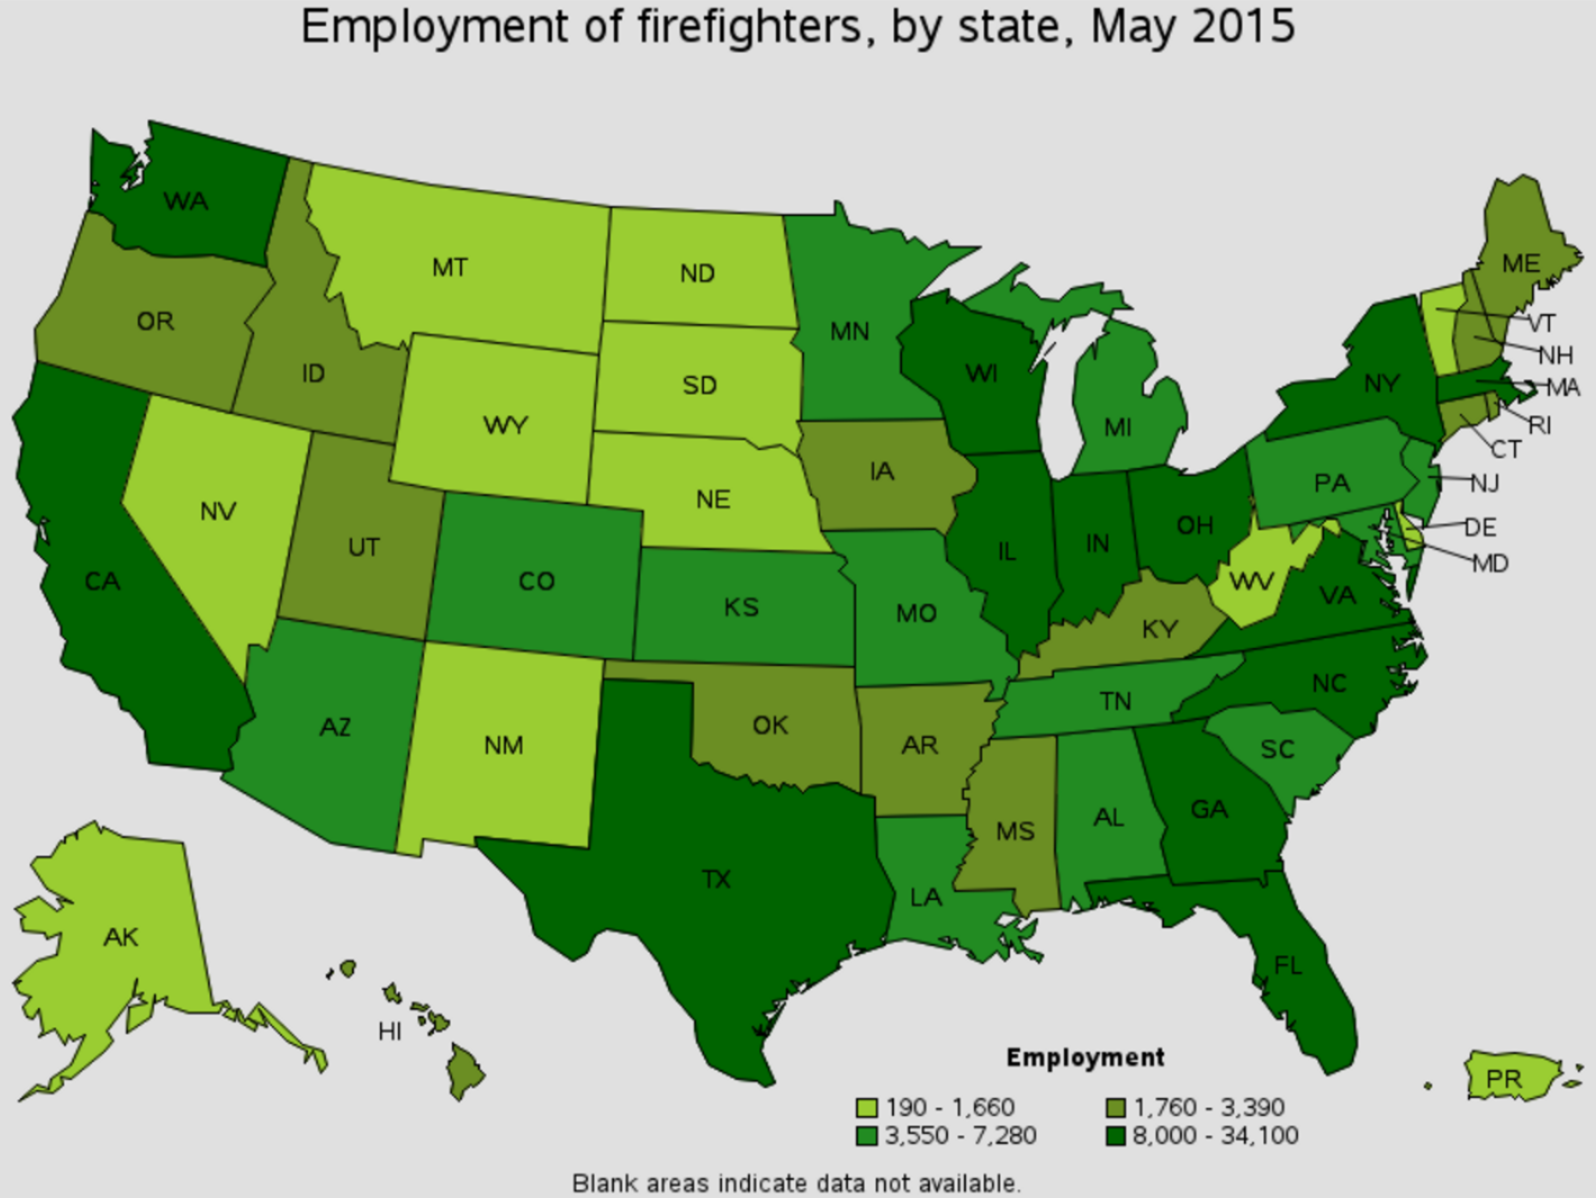 firefighter job outlook by state Yorba Linda California